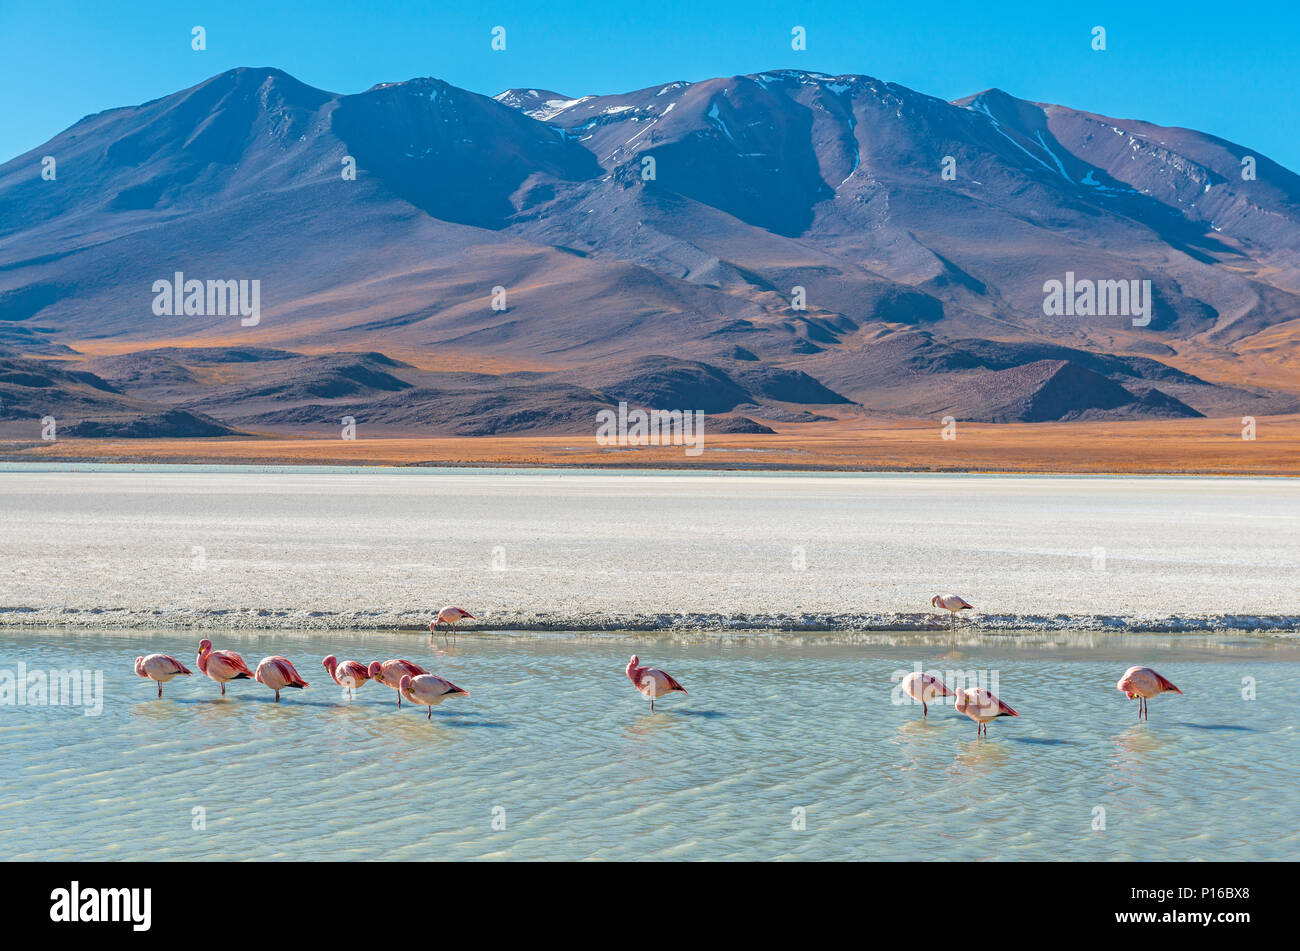 Landscape photograph with a few hundred James and Chilean flamingos in the Canapa Lagoon in the Andes mountain range near the Uyuni salt flat, Bolivia - Stock Image